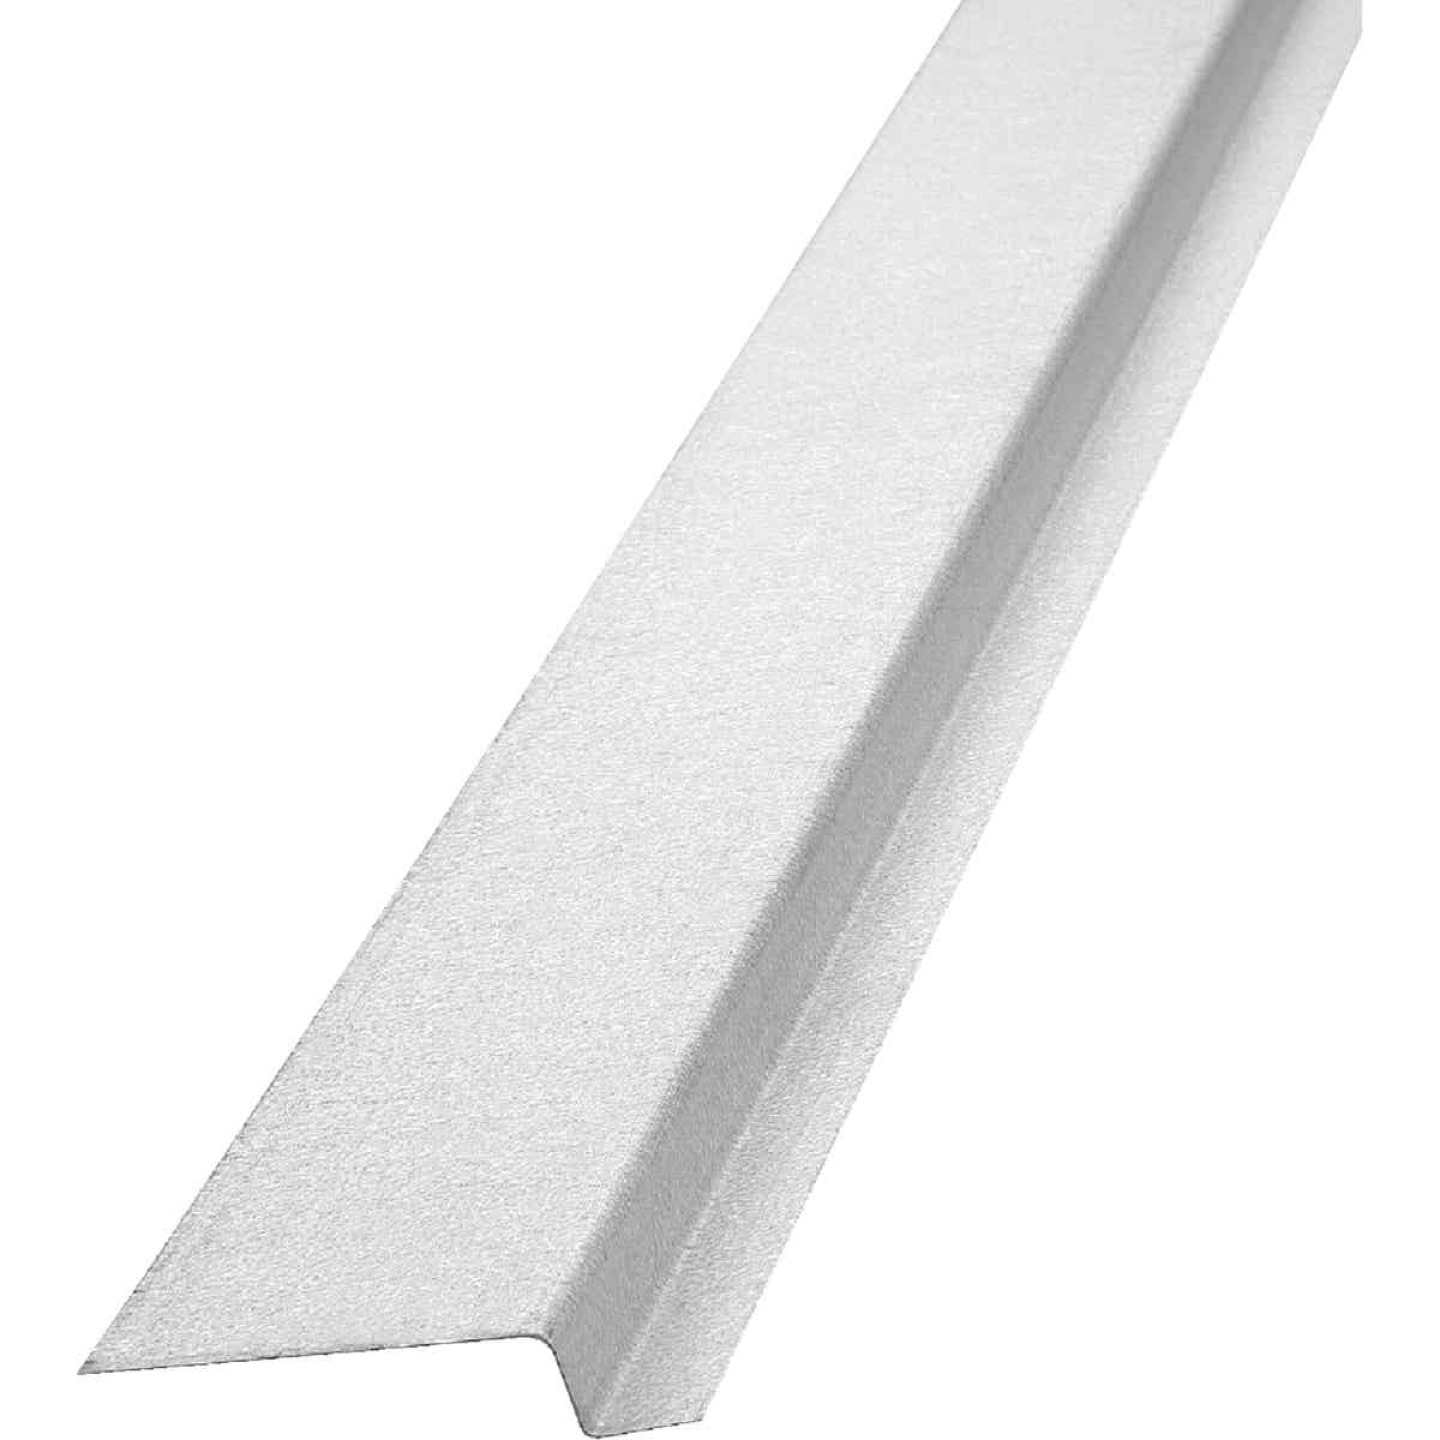 NorWesco 3/8 In. x 3/4 In. x 1-3/4 In. x 10 Ft. Mill Galvanized Ply Edge Z-Style Flashing Image 1